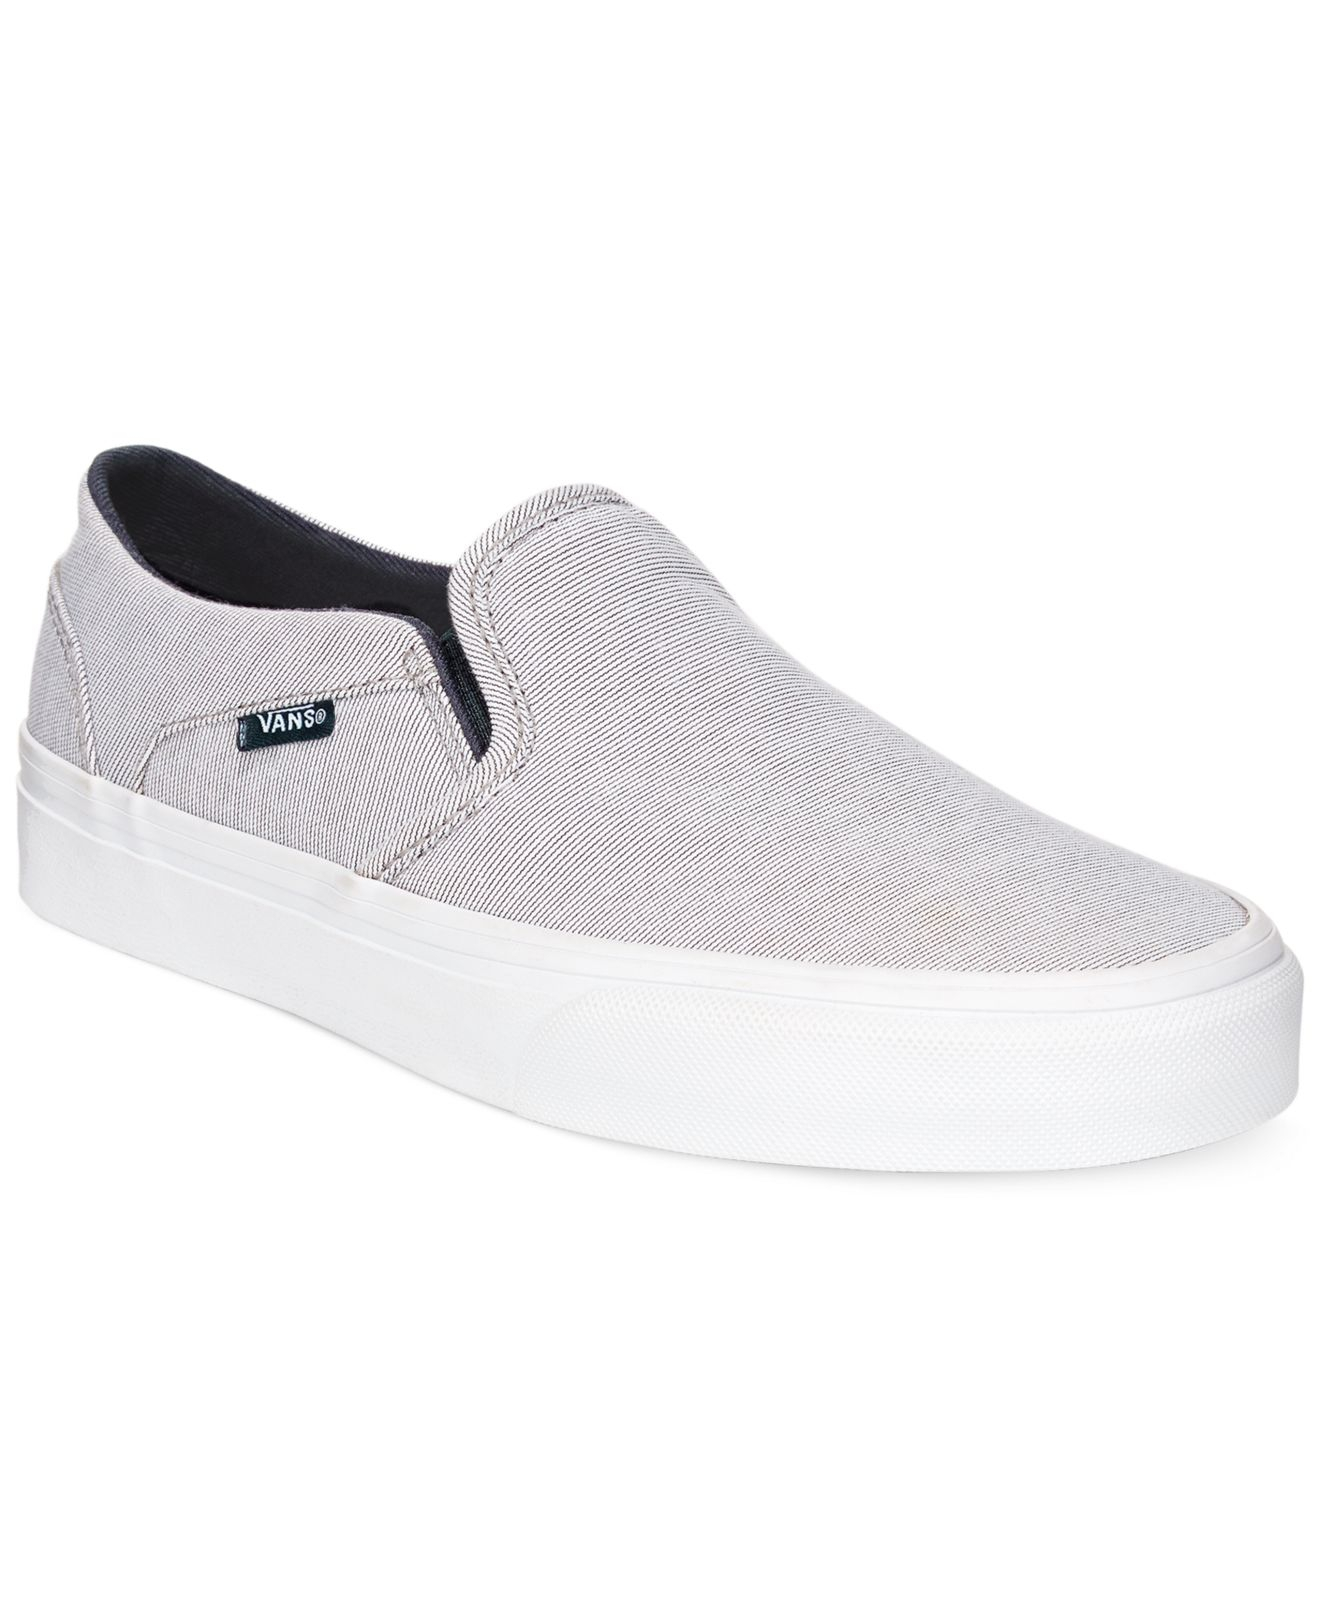 vans womens classic slip-on sneakers